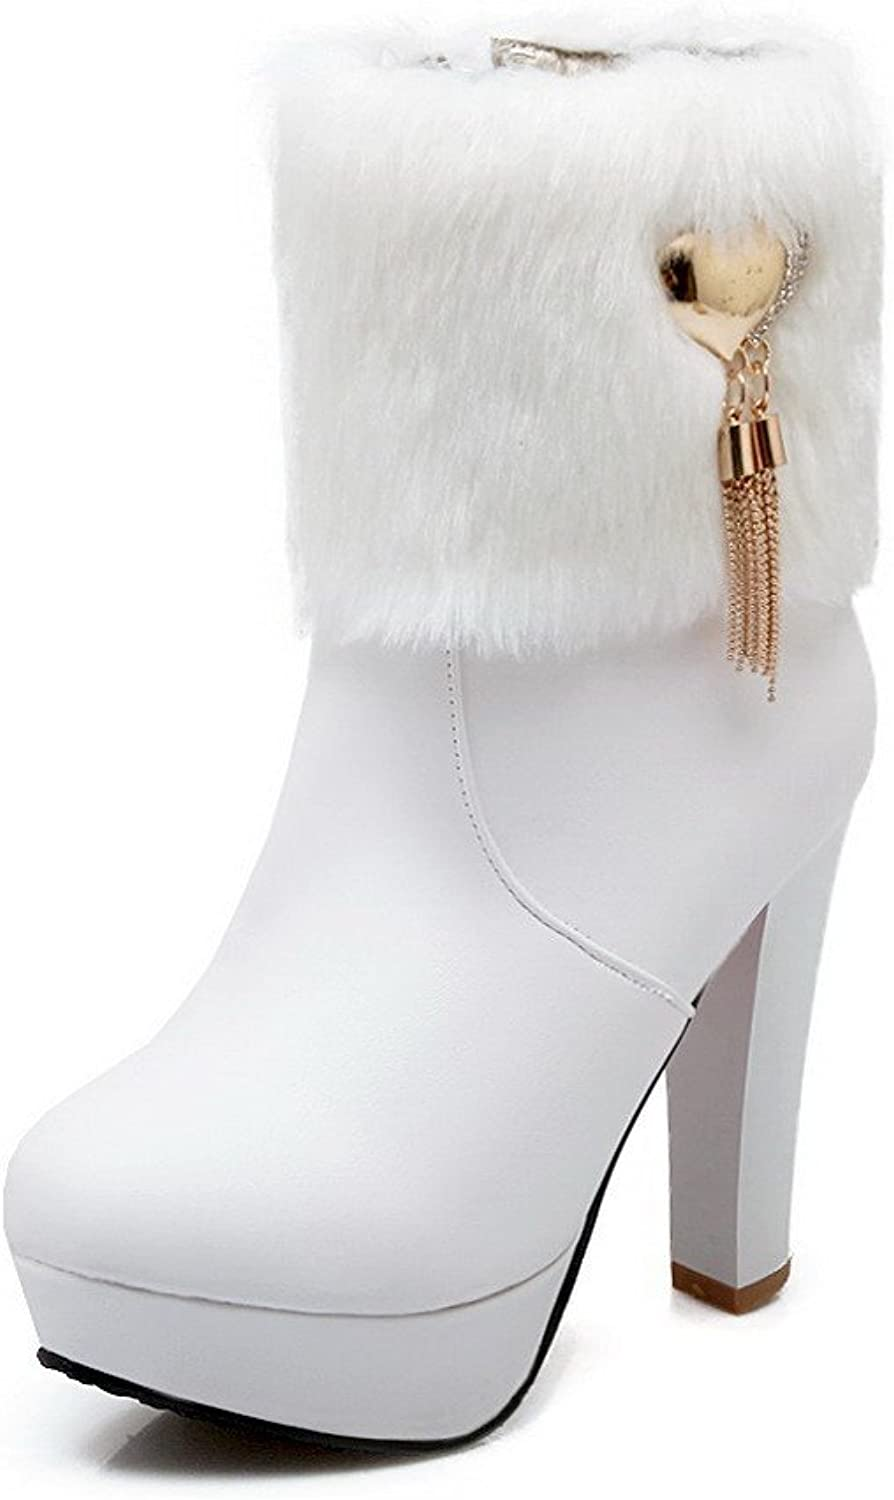 AmoonyFashion Women's High-Heels Soft Material Round Closed Toe Solid Boots with Adornment